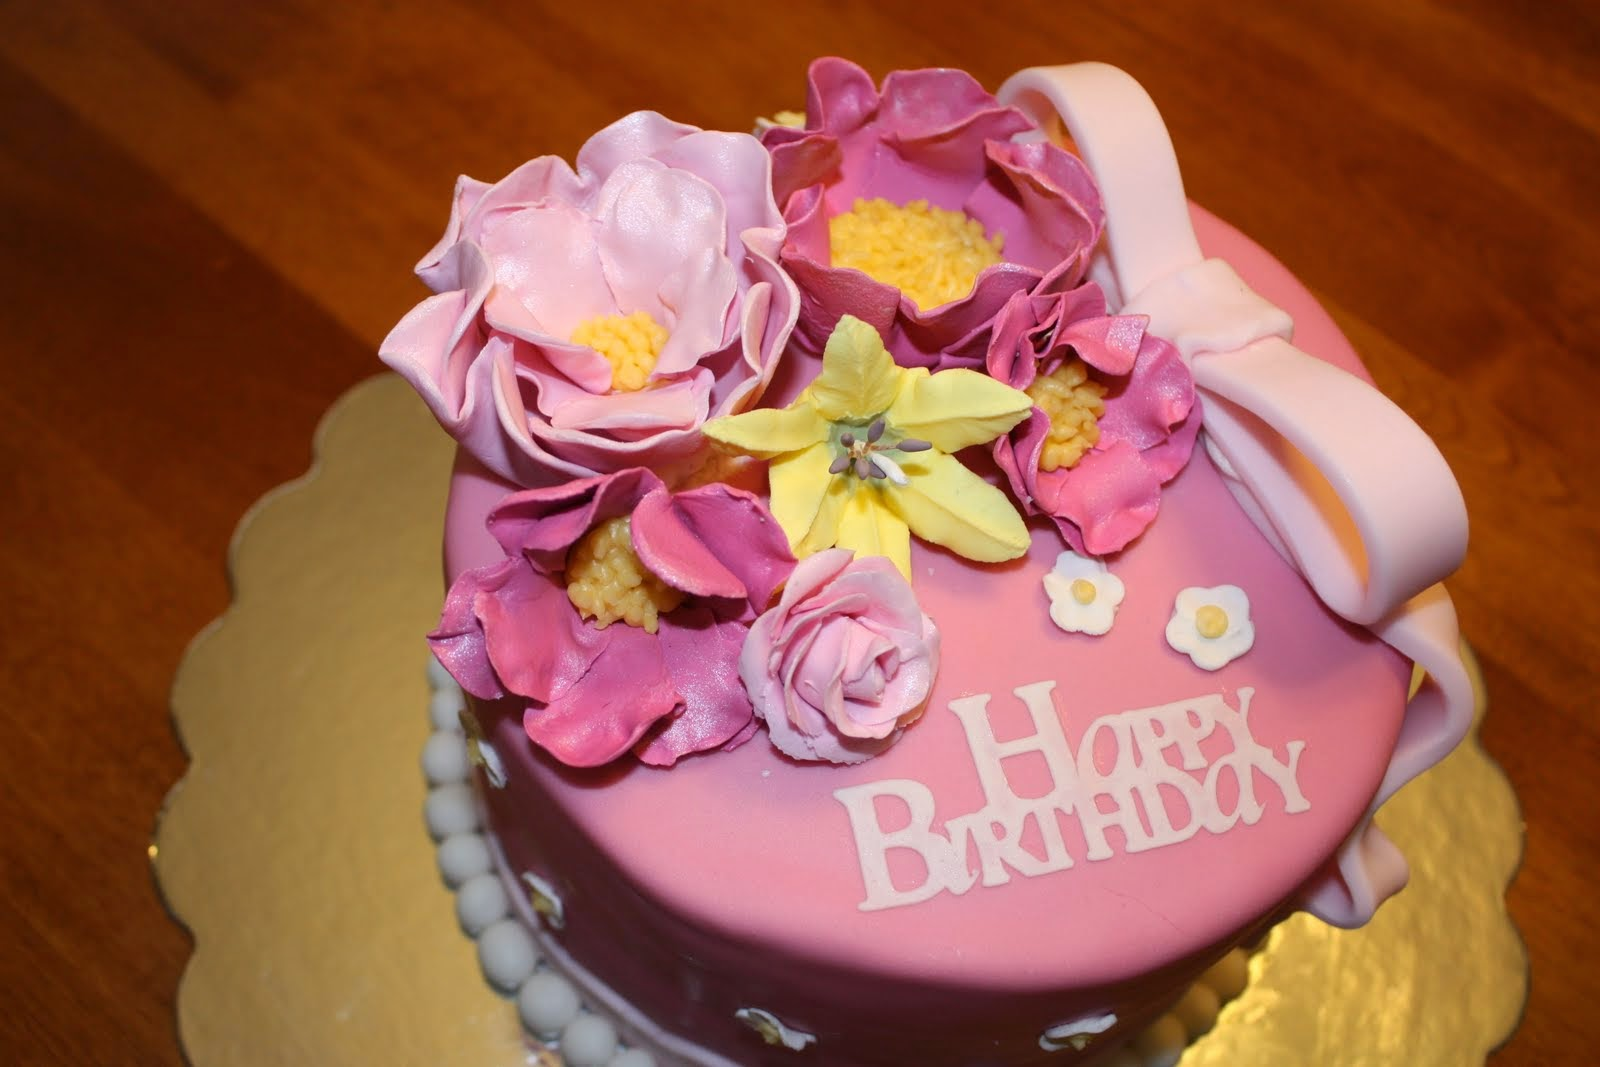 Birthday Wishes Images With Cake And Flowers : Happy Birthday Flower Pictures - Beautiful Flowers